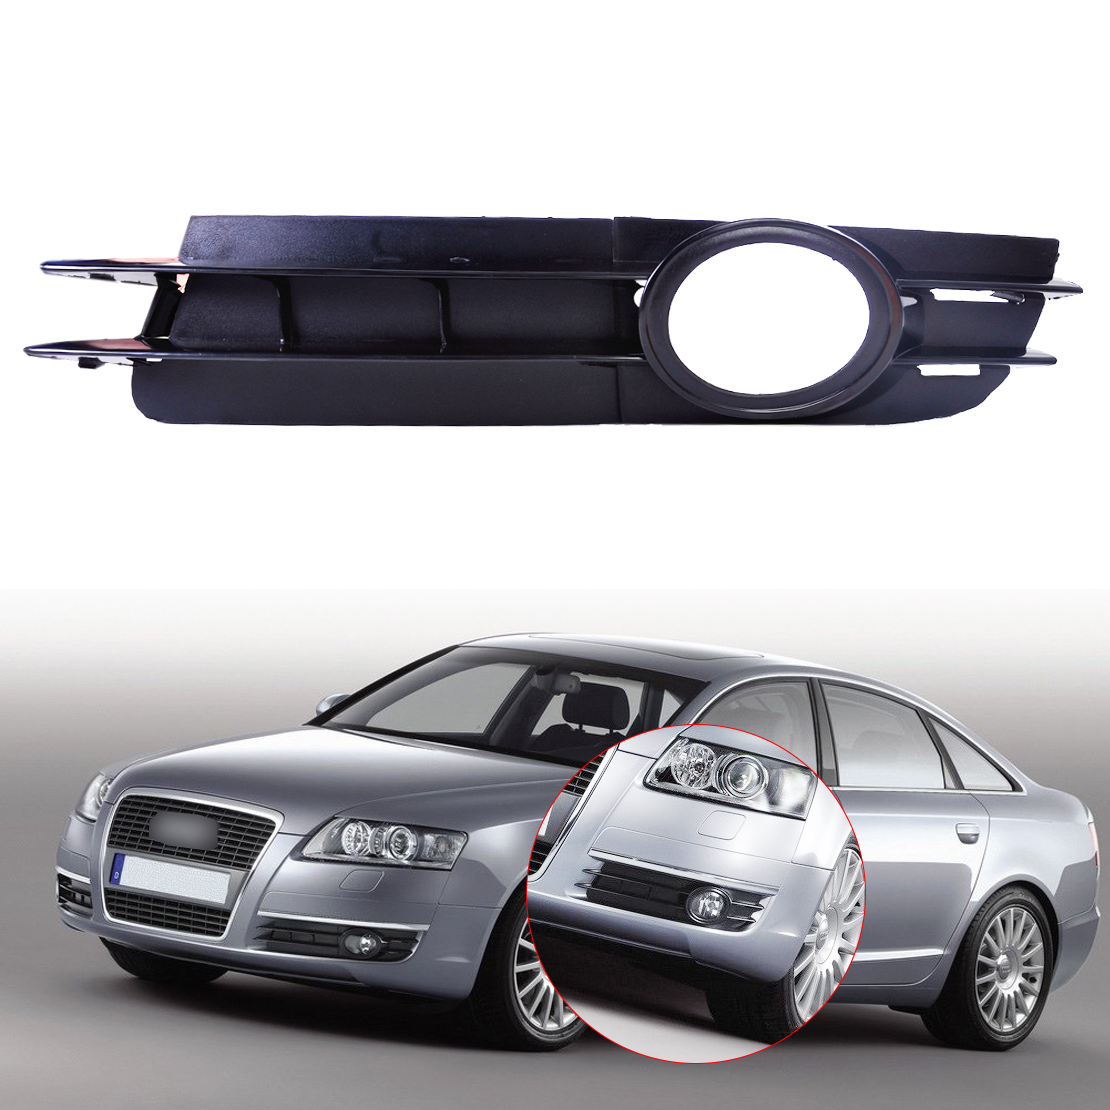 DWCX 4F0807681A Front Left Bumper Fog Light Lamp Grill Grille For Audi A6 / A6 Quattro C6 2005 2006 2007 2008 free shipping for vw polo 2005 2006 2007 2008 new front left side halogen fog light fog light with bulb